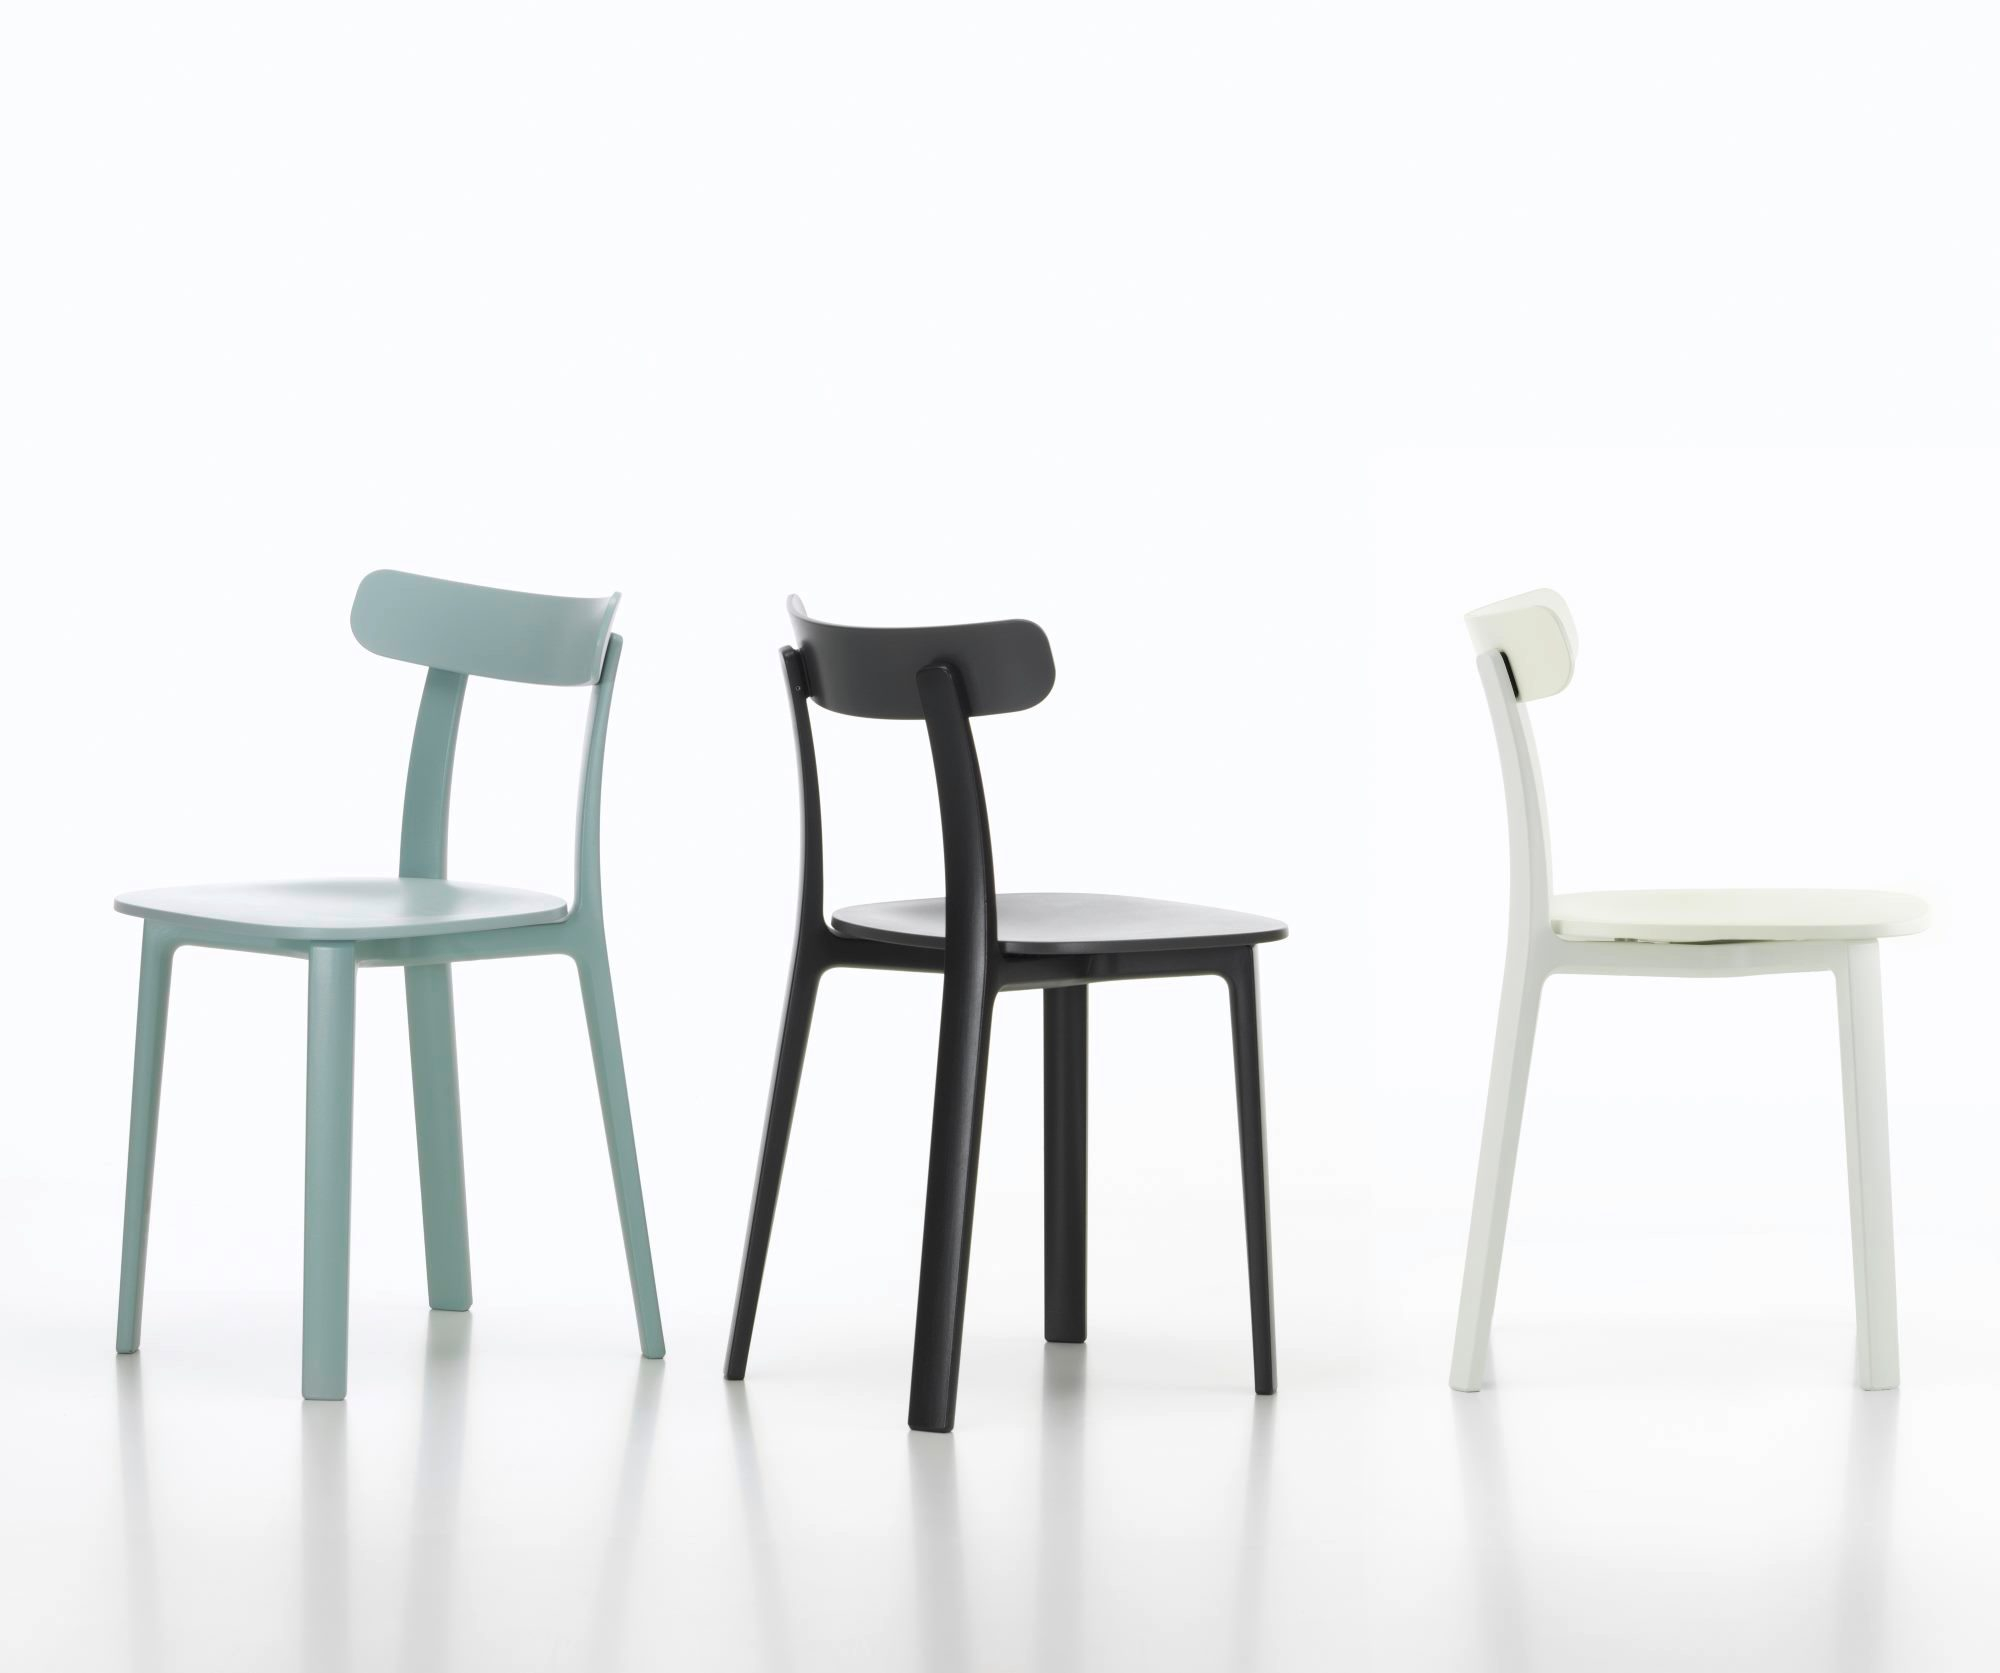 All Plastic Chair Outdoor Stuhl Vitra